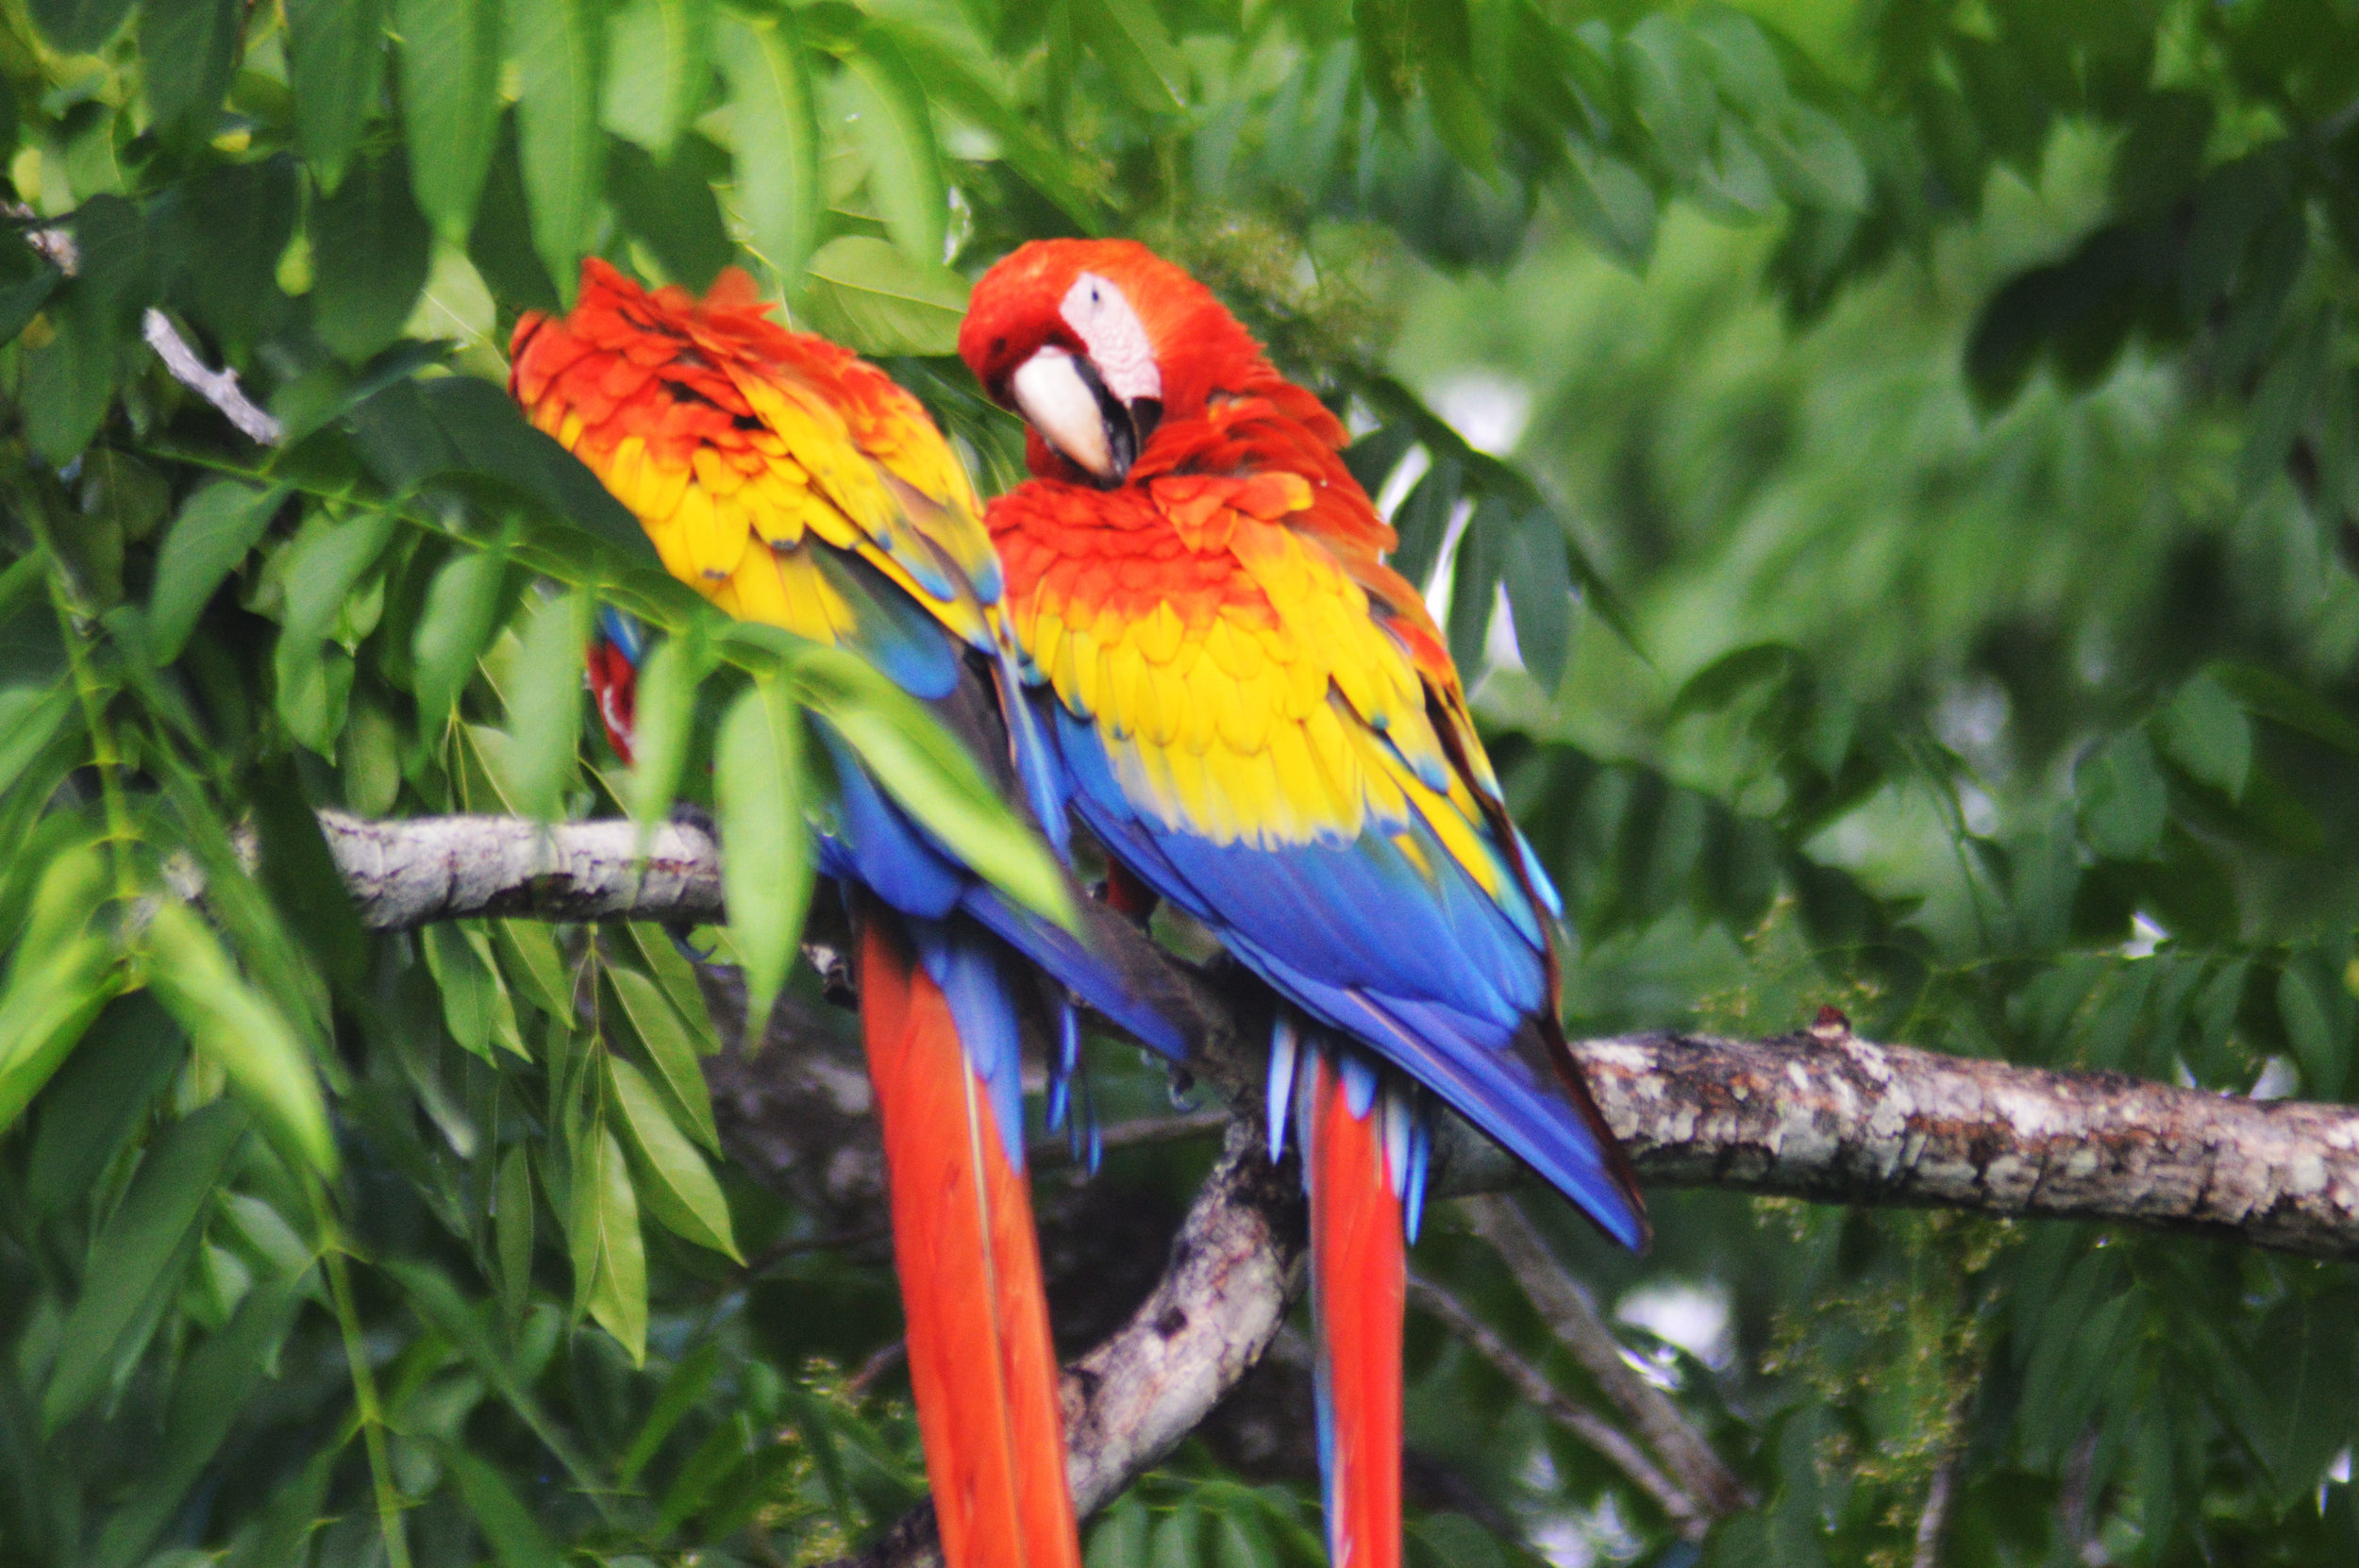 Retouched - 2 Macaws on Branch.jpg